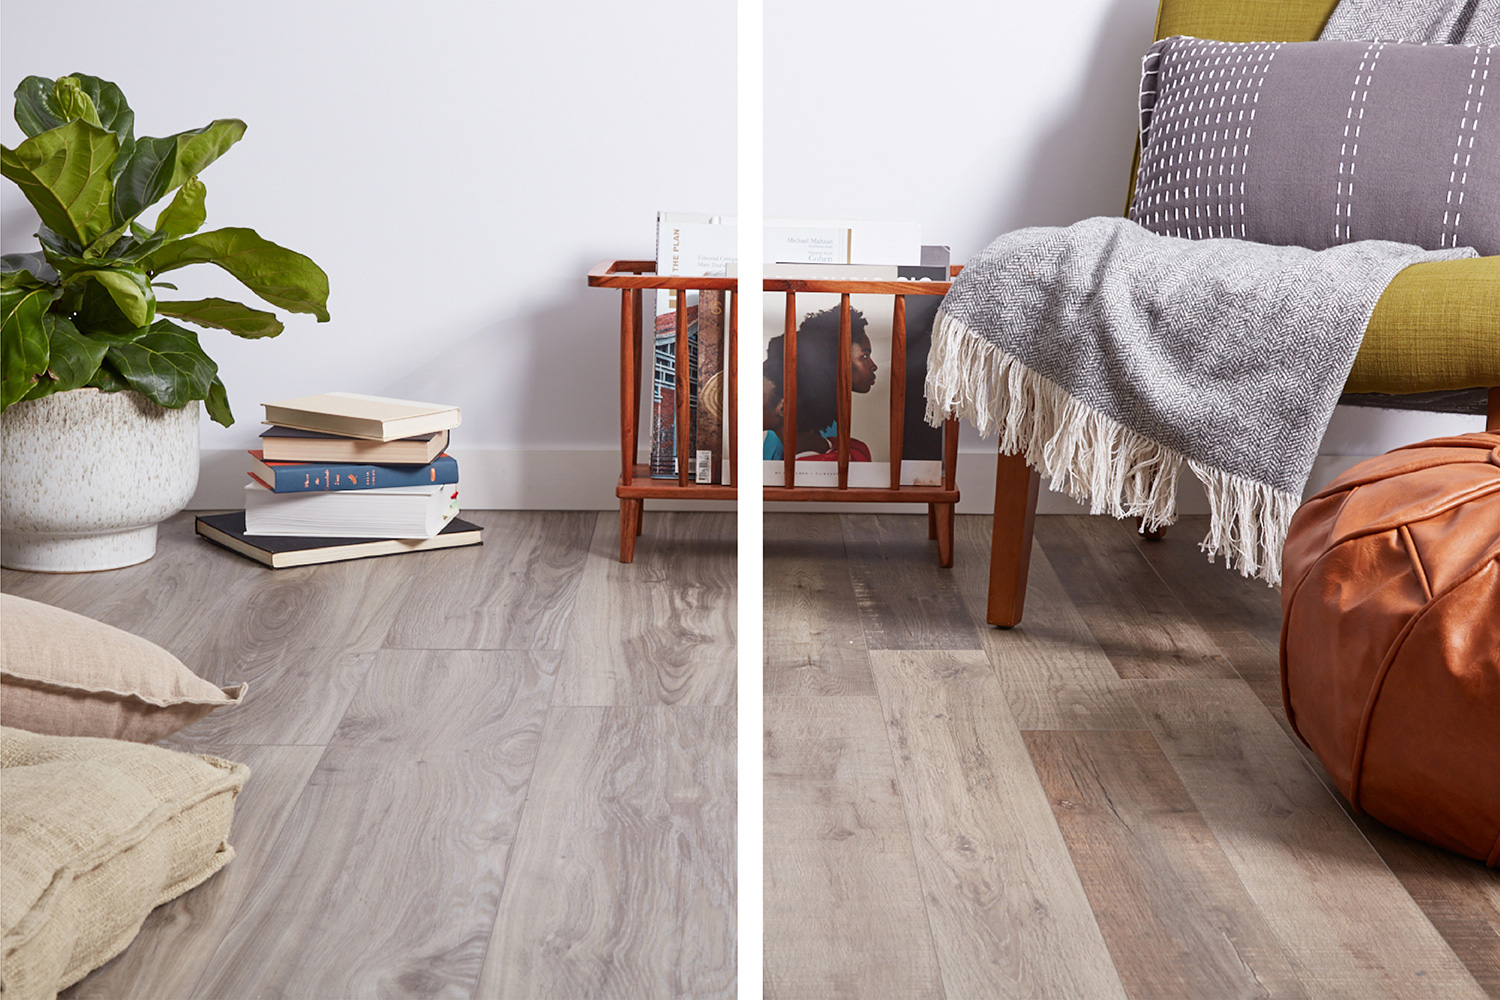 vinyl-vs-laminate-flooring-1822800_hero